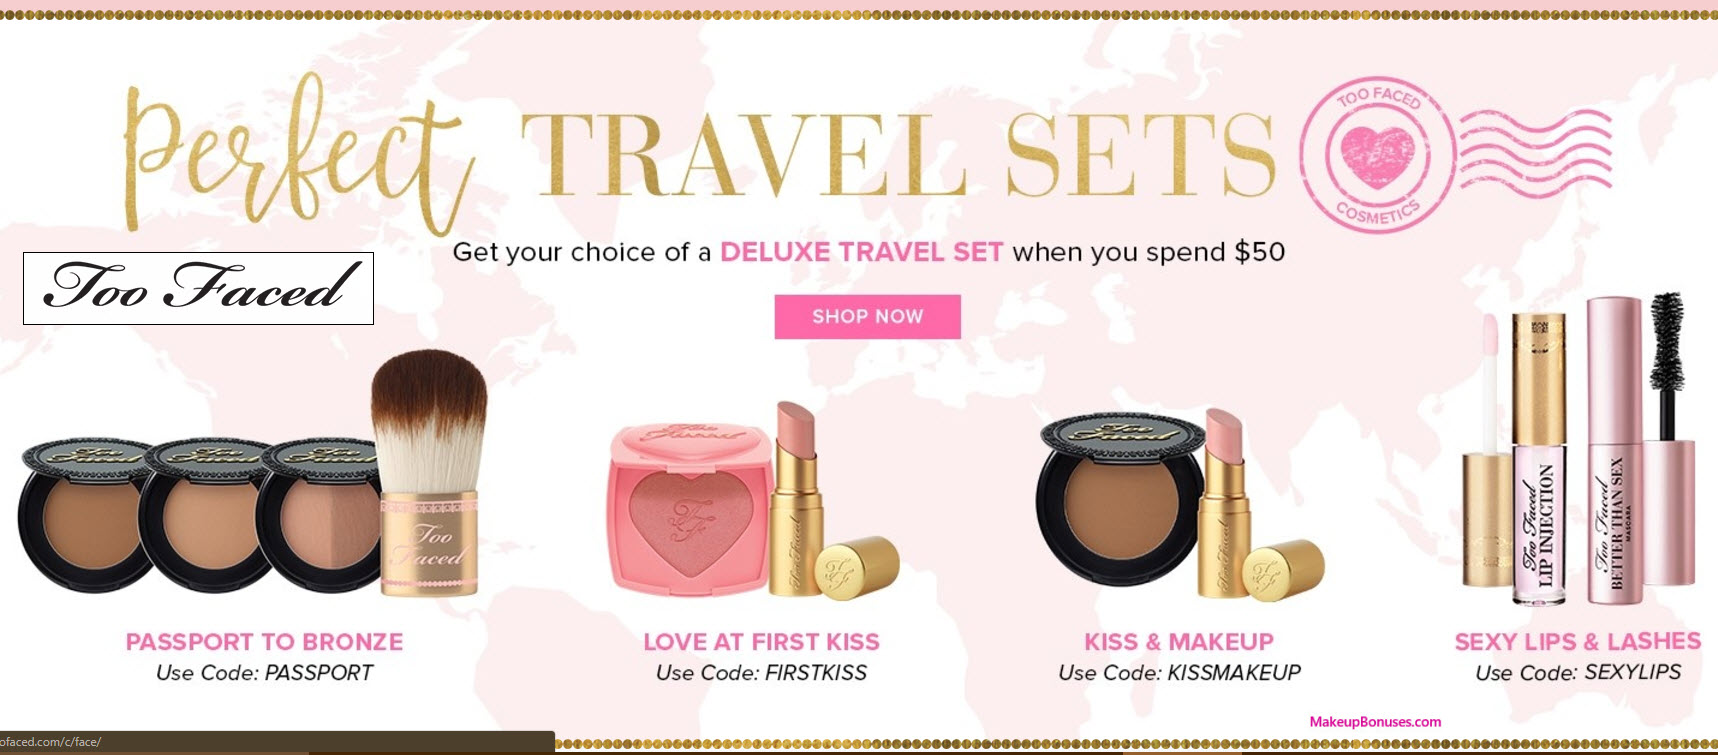 Sephora is offering $$25 off with $75 purchase when you use promo code at online checkout. Note: Offer valid for one-time use only. Exclusions apply.